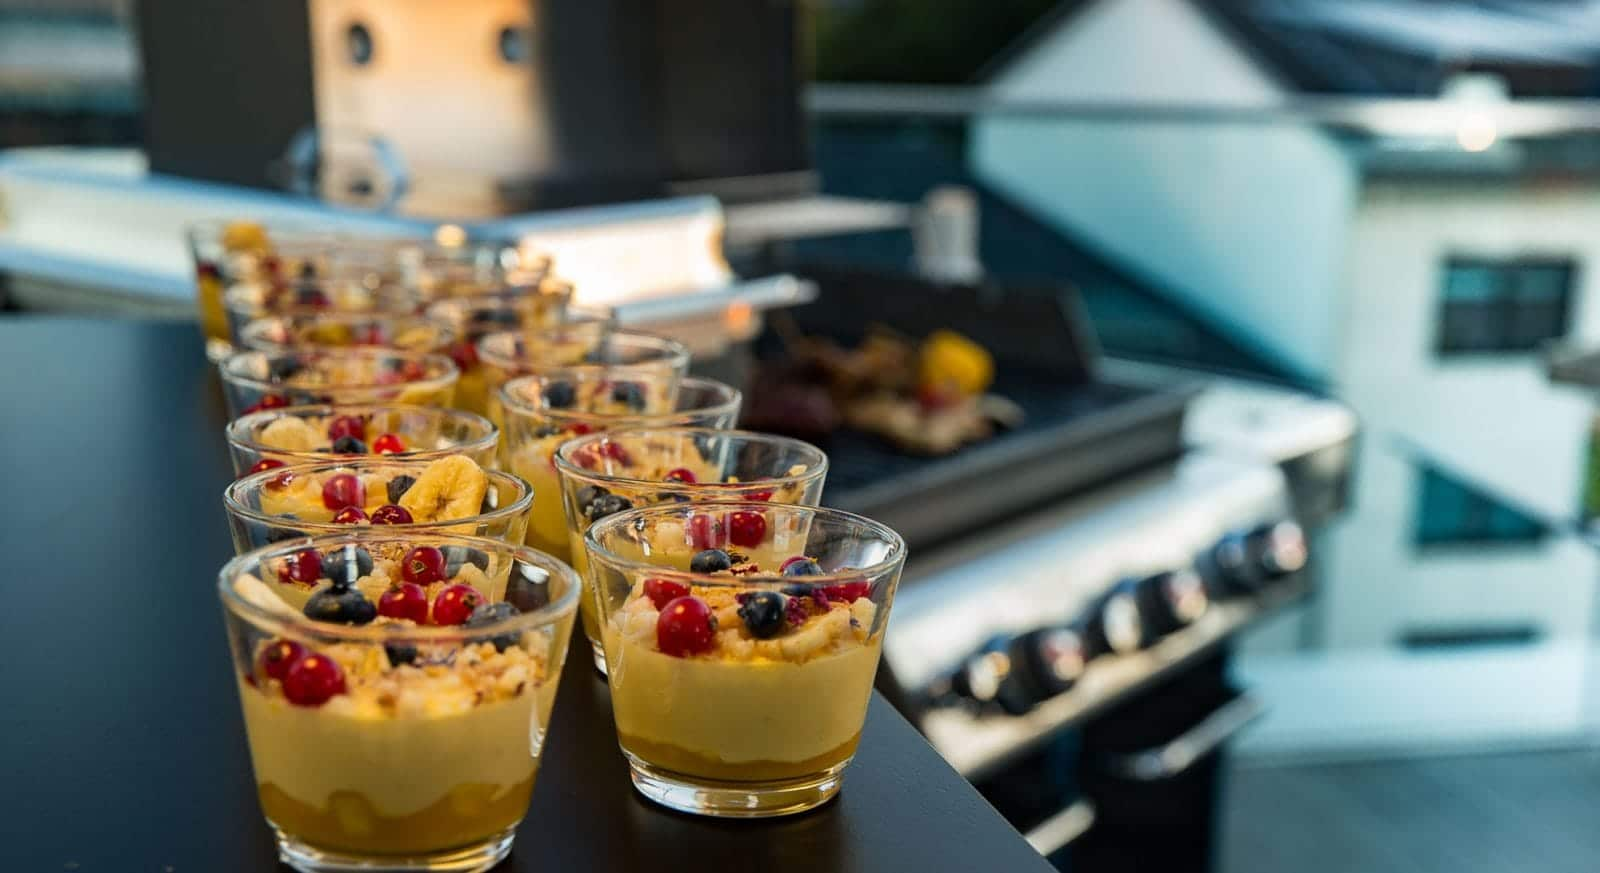 Nachspeise: Grill Catering & Barbecue mit klassischem Grillbuffet. Catering Service & Events Frankfurt am Main